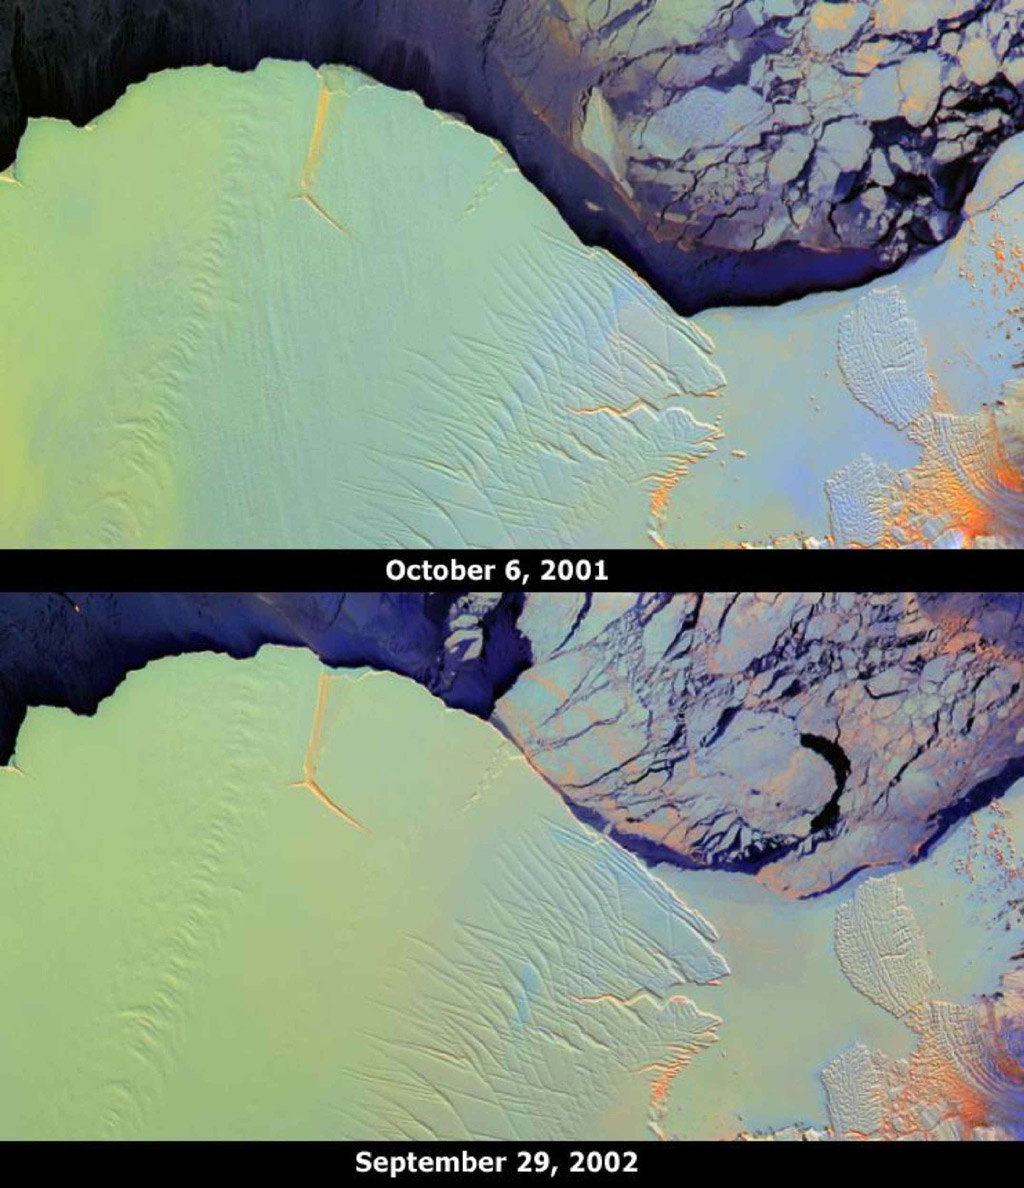 These images from NASA's Terra satellite portray the Amery Ice Shelf front on October 6, 2001 (top) and September 29, 2002 (bottom), and illustrate changes that took place over the year elapsed between the two views.